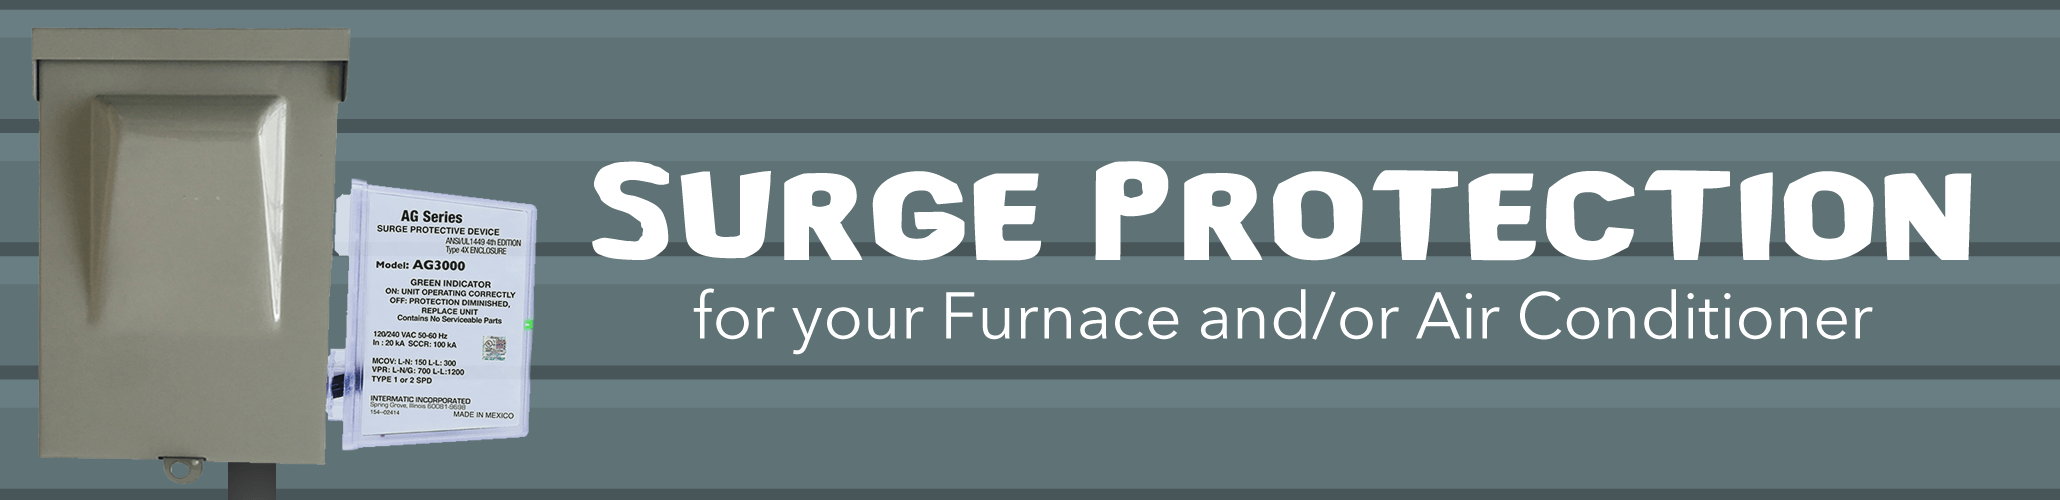 Surge Protection for your Furnace and/or Air Conditioner